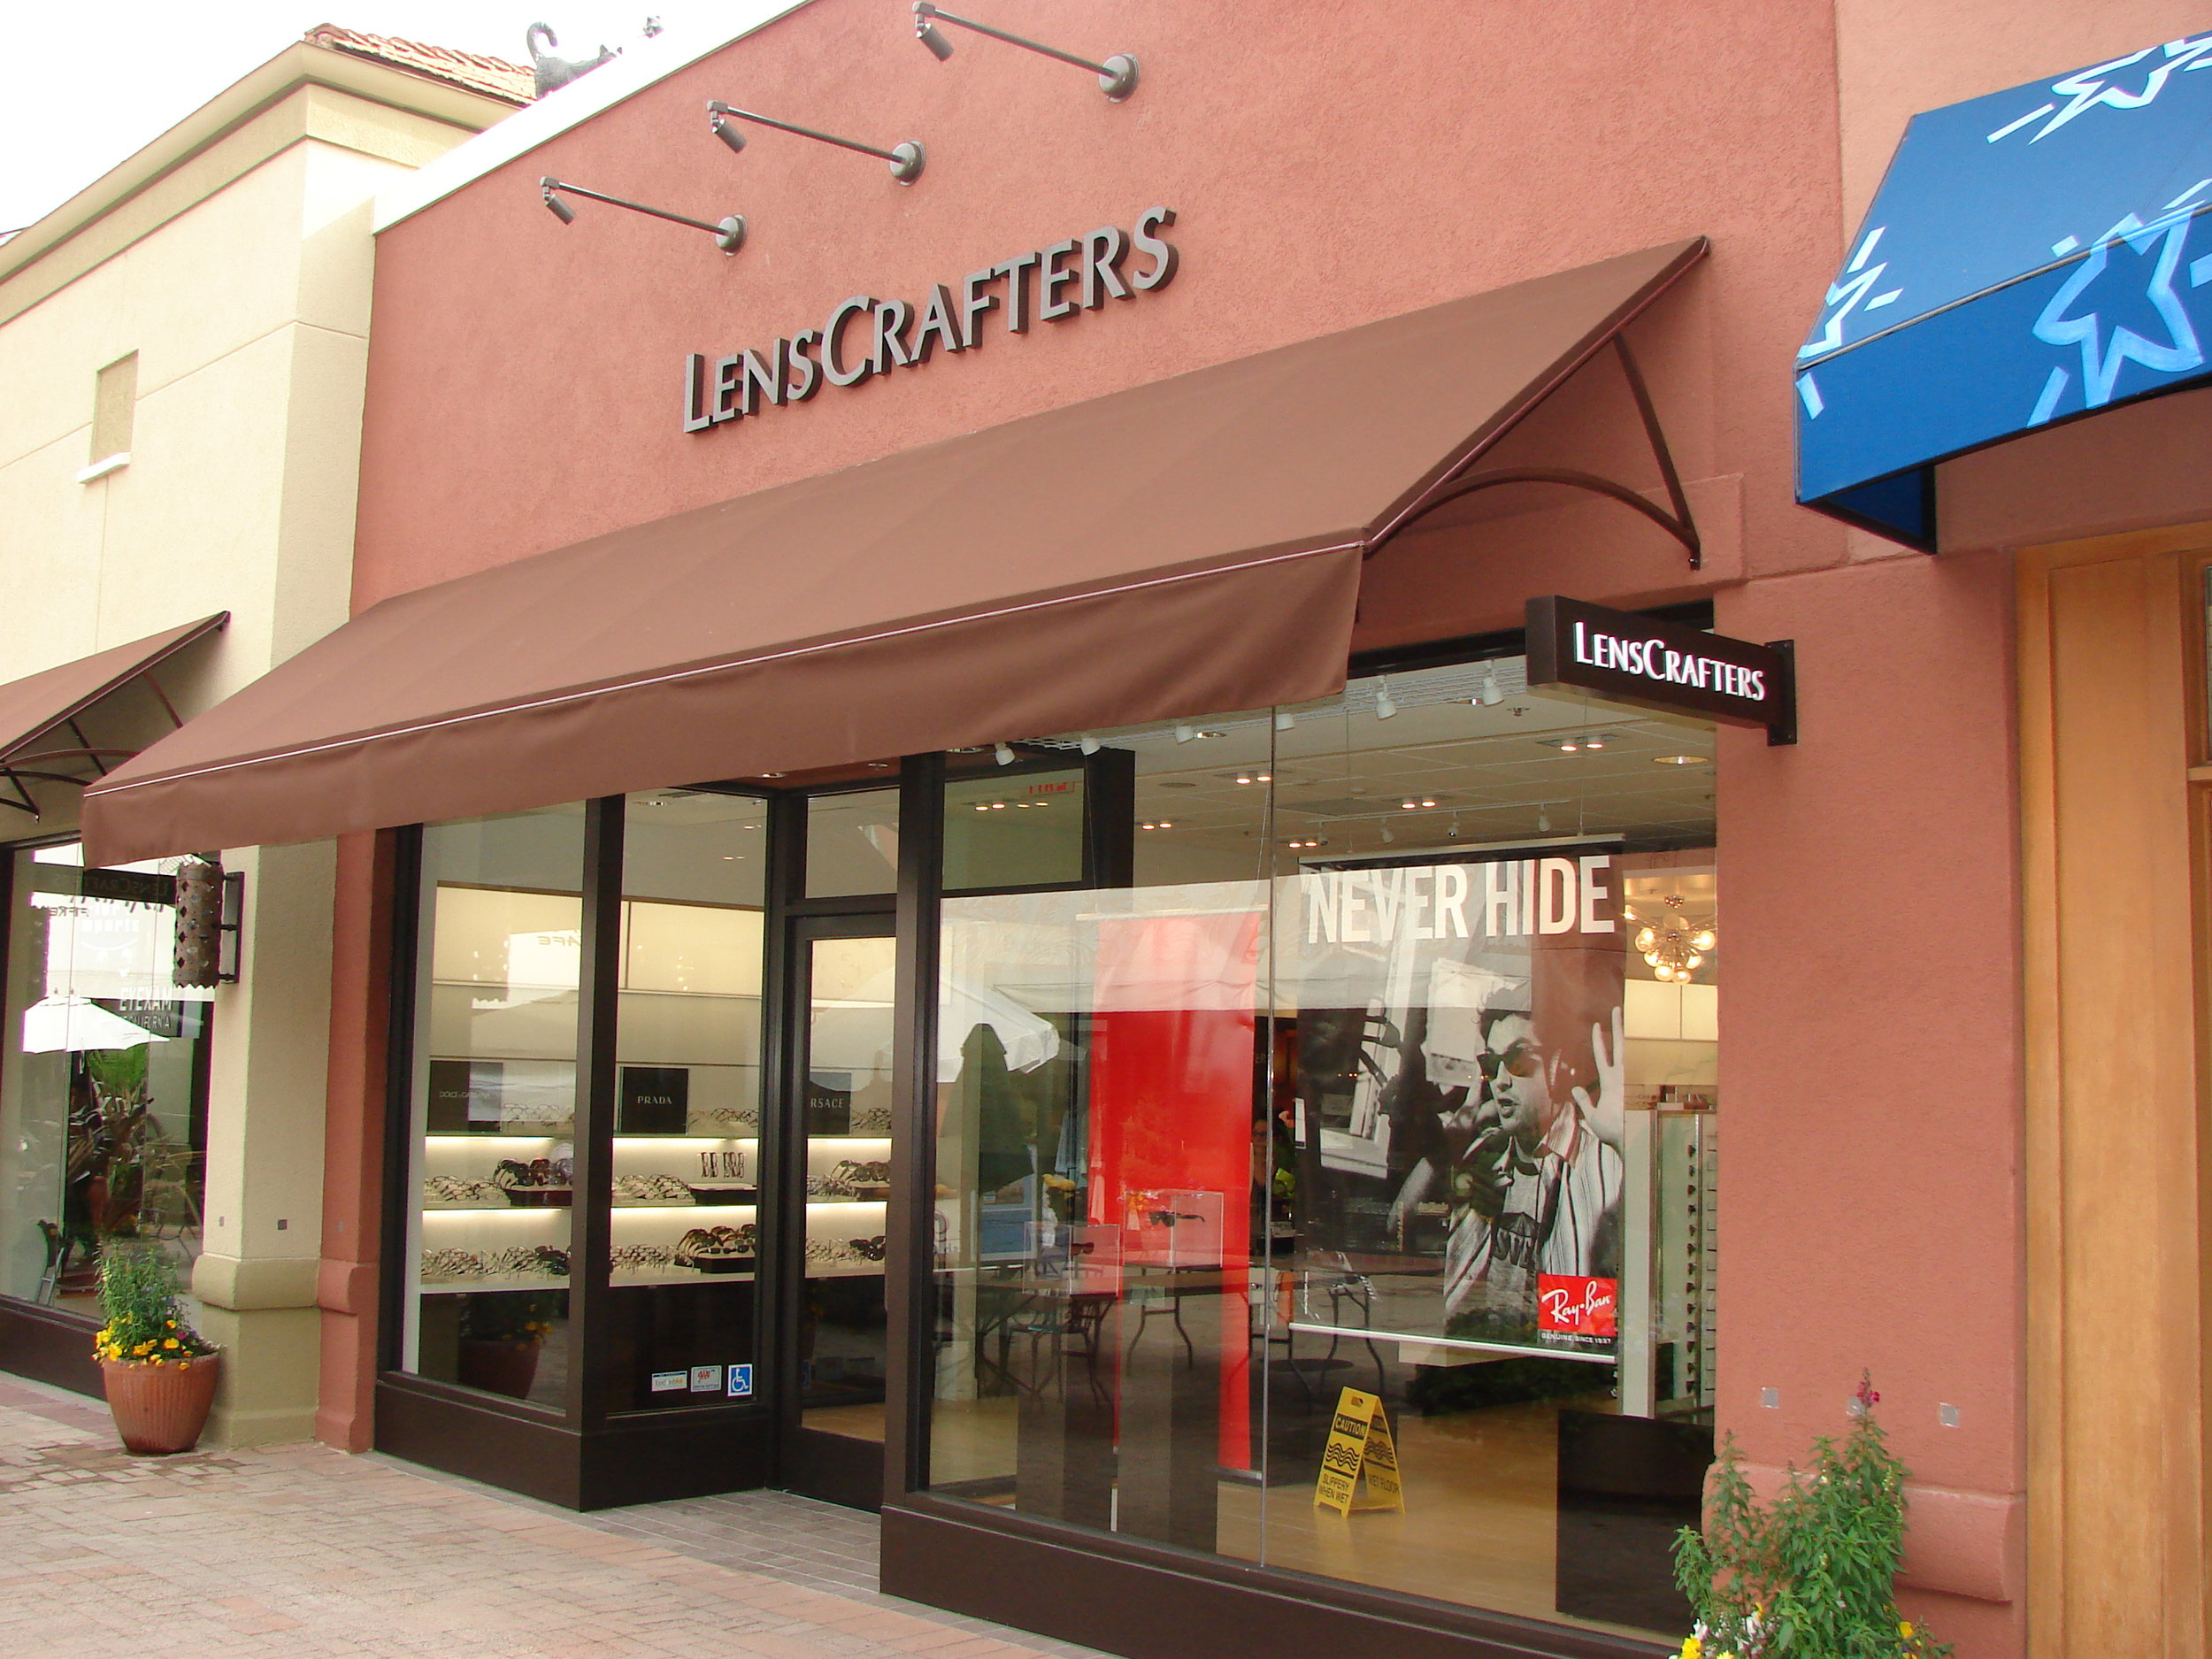 Lense Crafters Ext 2.JPG